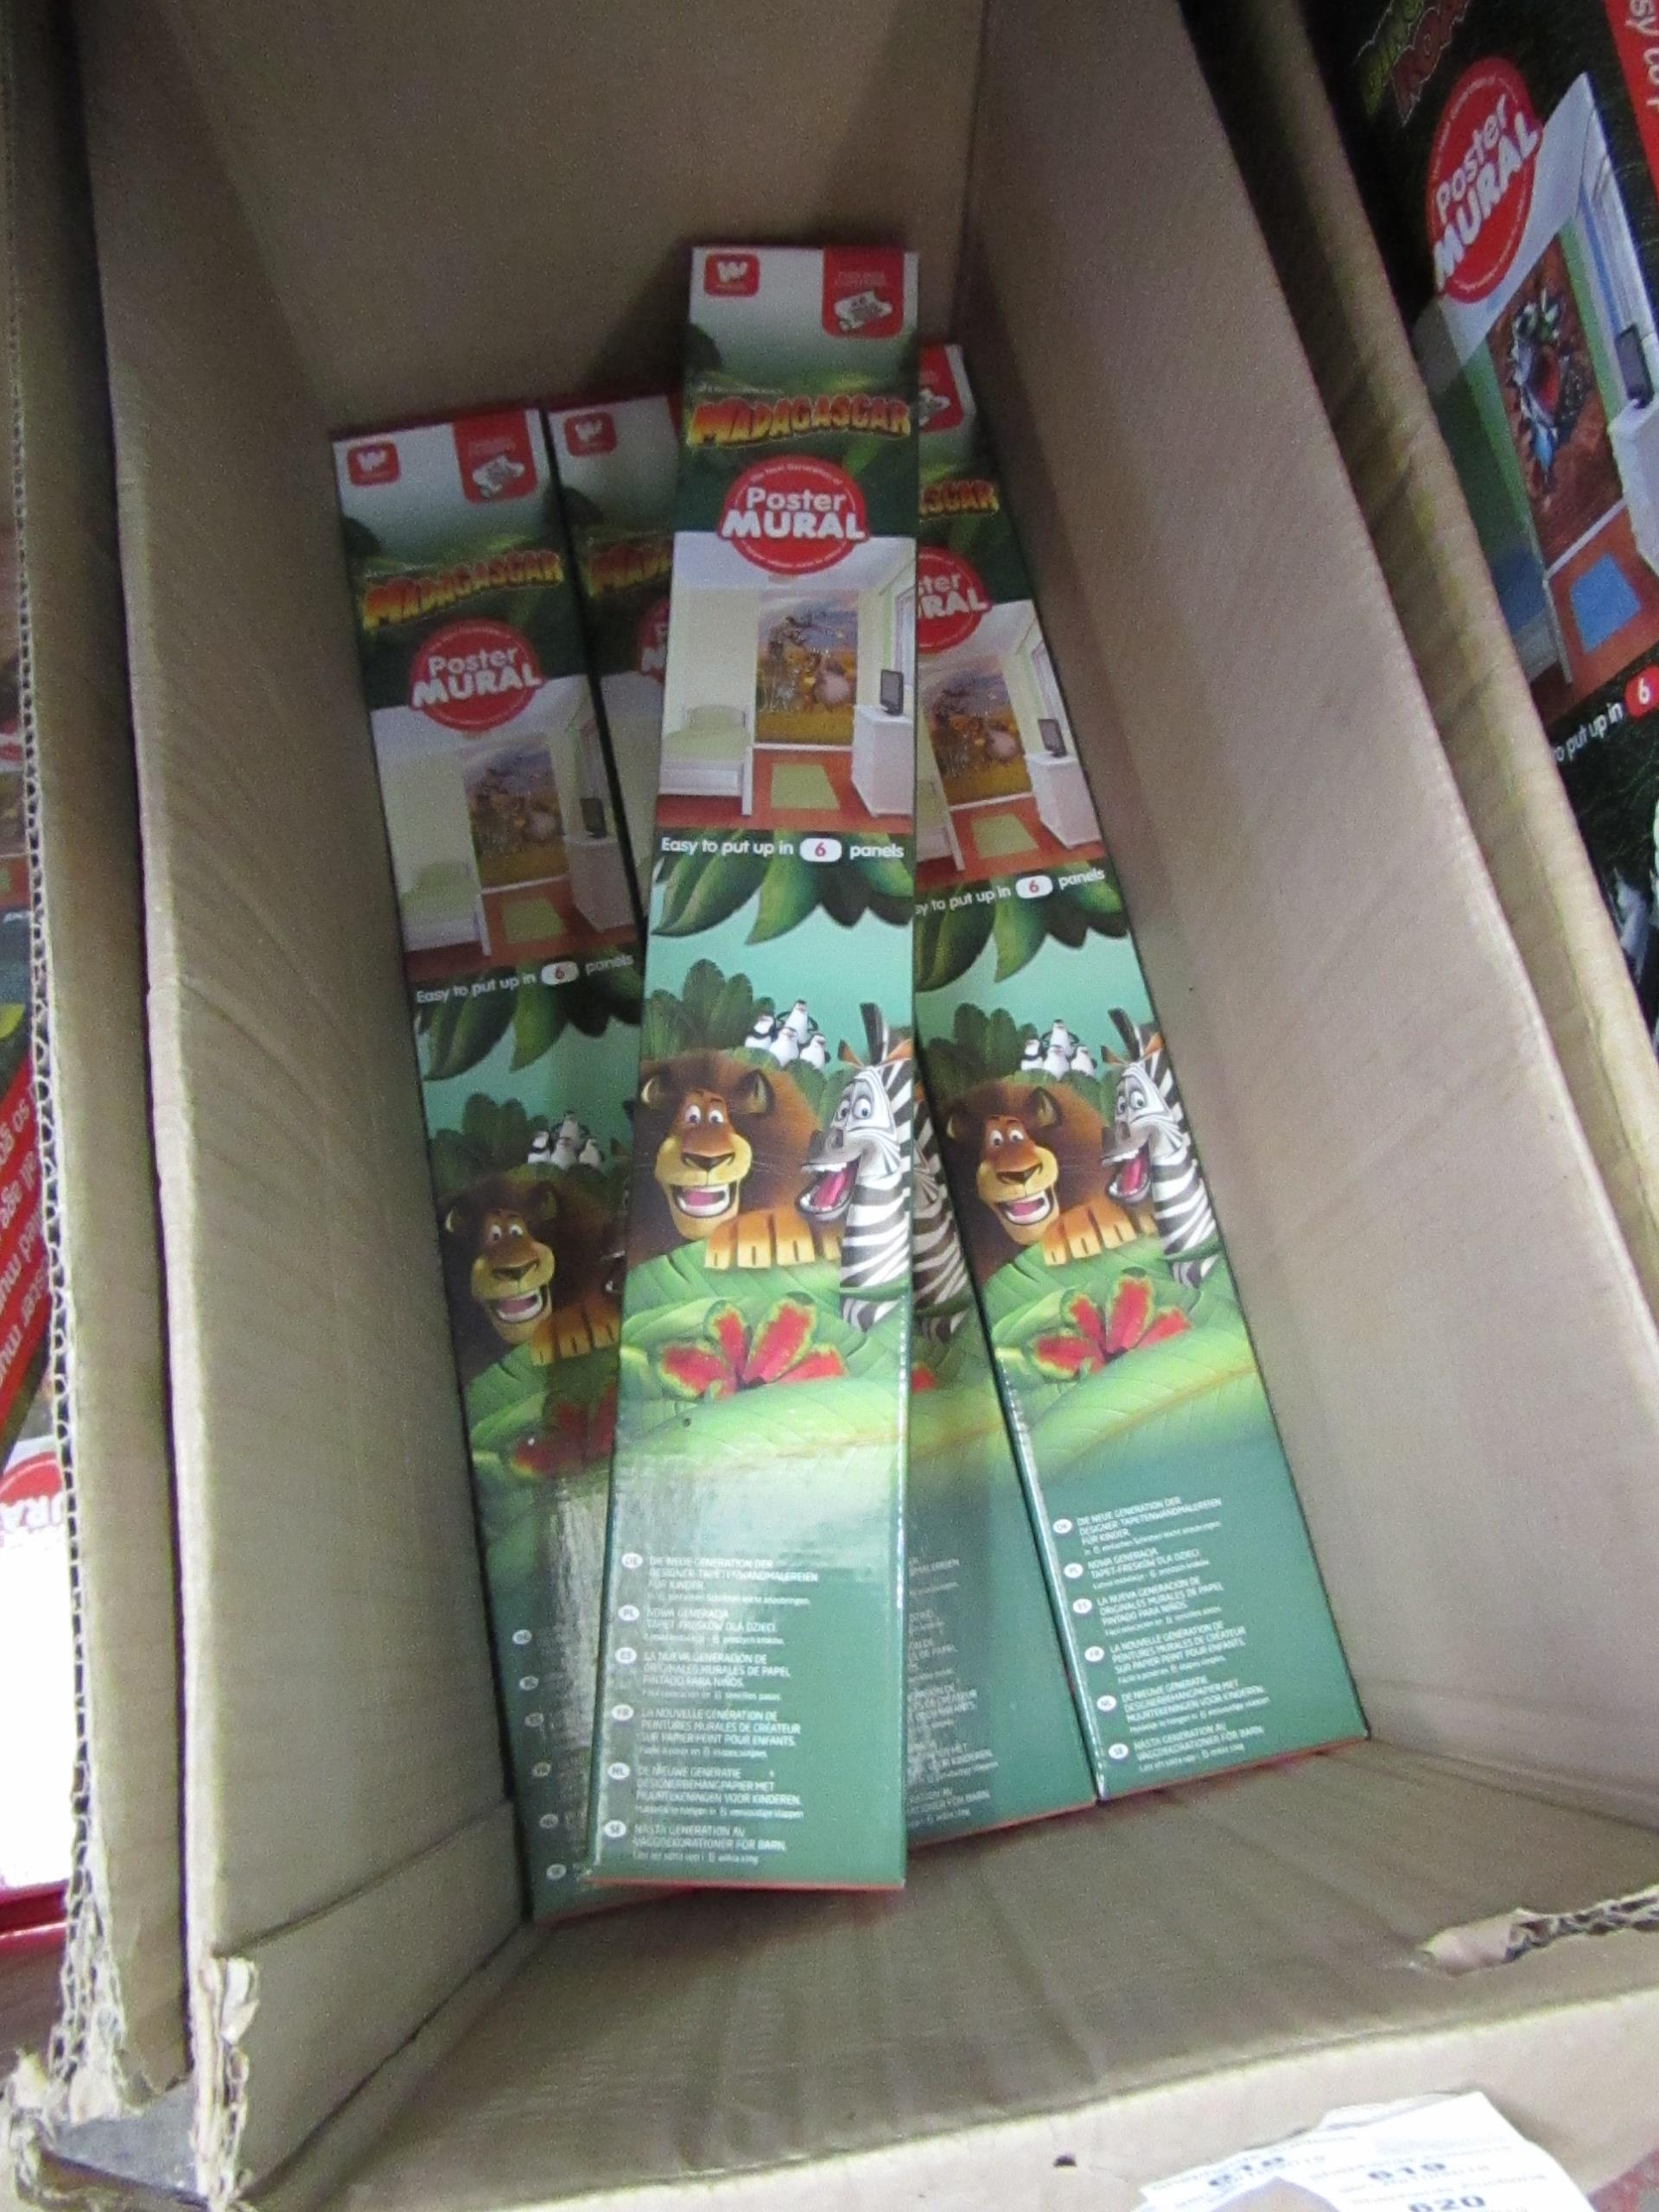 Lot 618 - Madagascar mural poster, new and boxed.